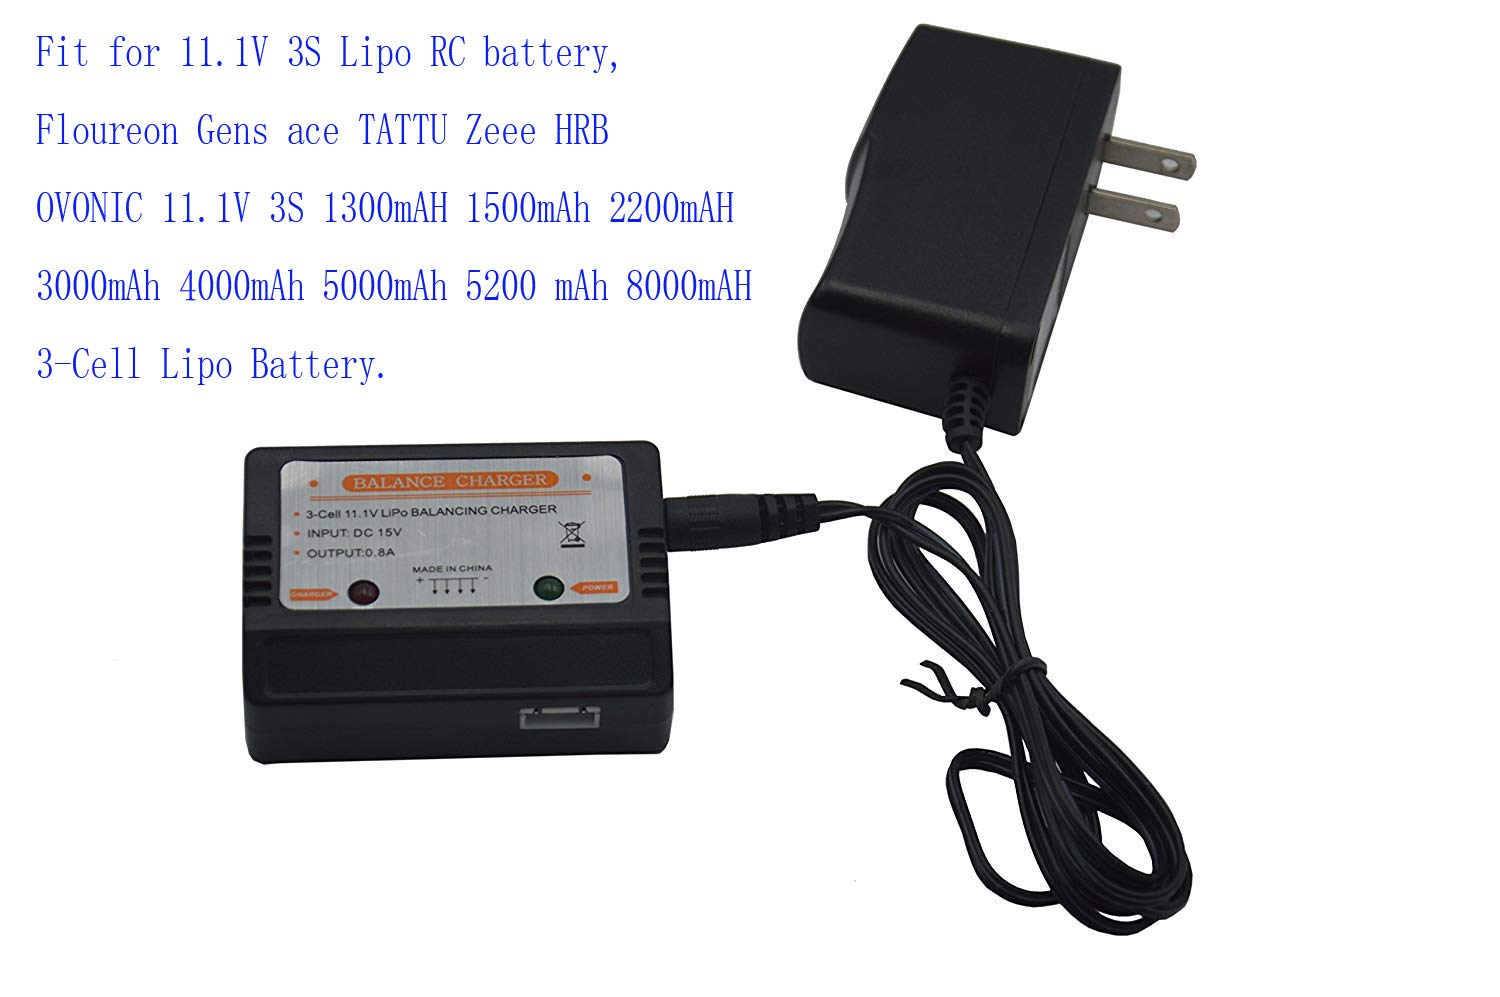 Blomiky 15V Wall Charger with 11.1V XH-4P Plug Balance Box for 11.1V 3S Lipo Battery 15V Charger